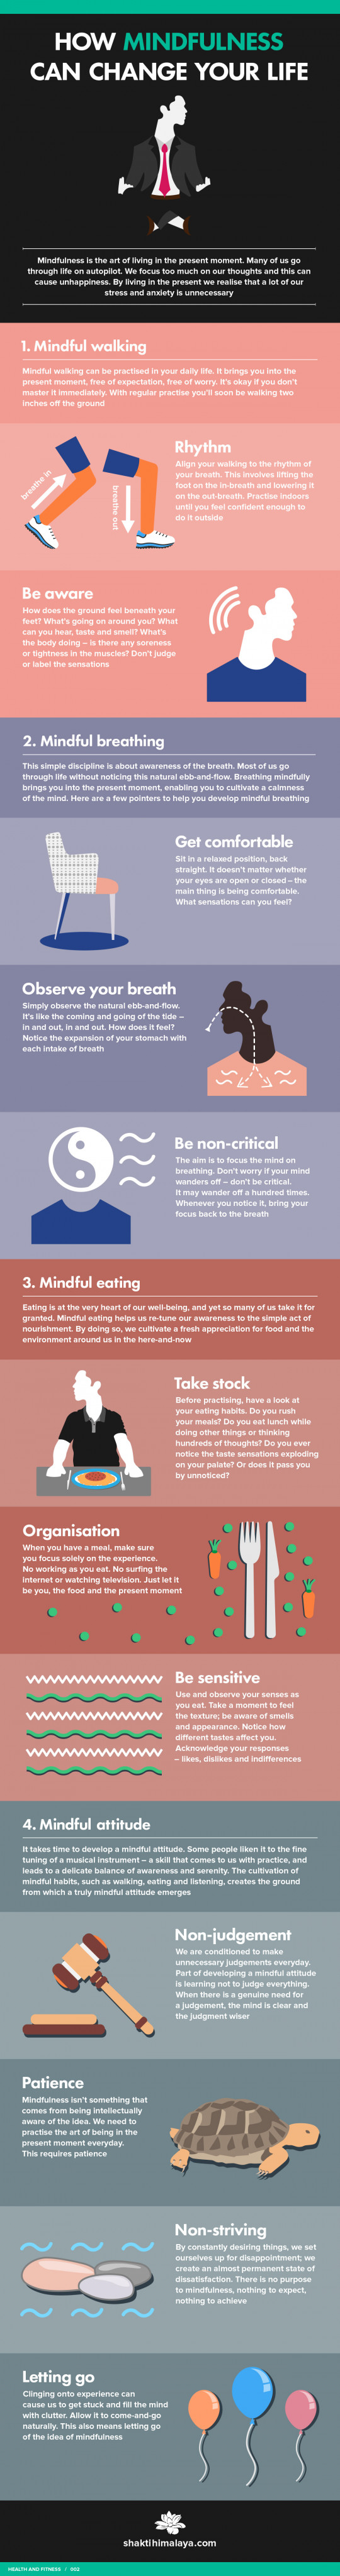 How Mindfulness Can Change Your Life